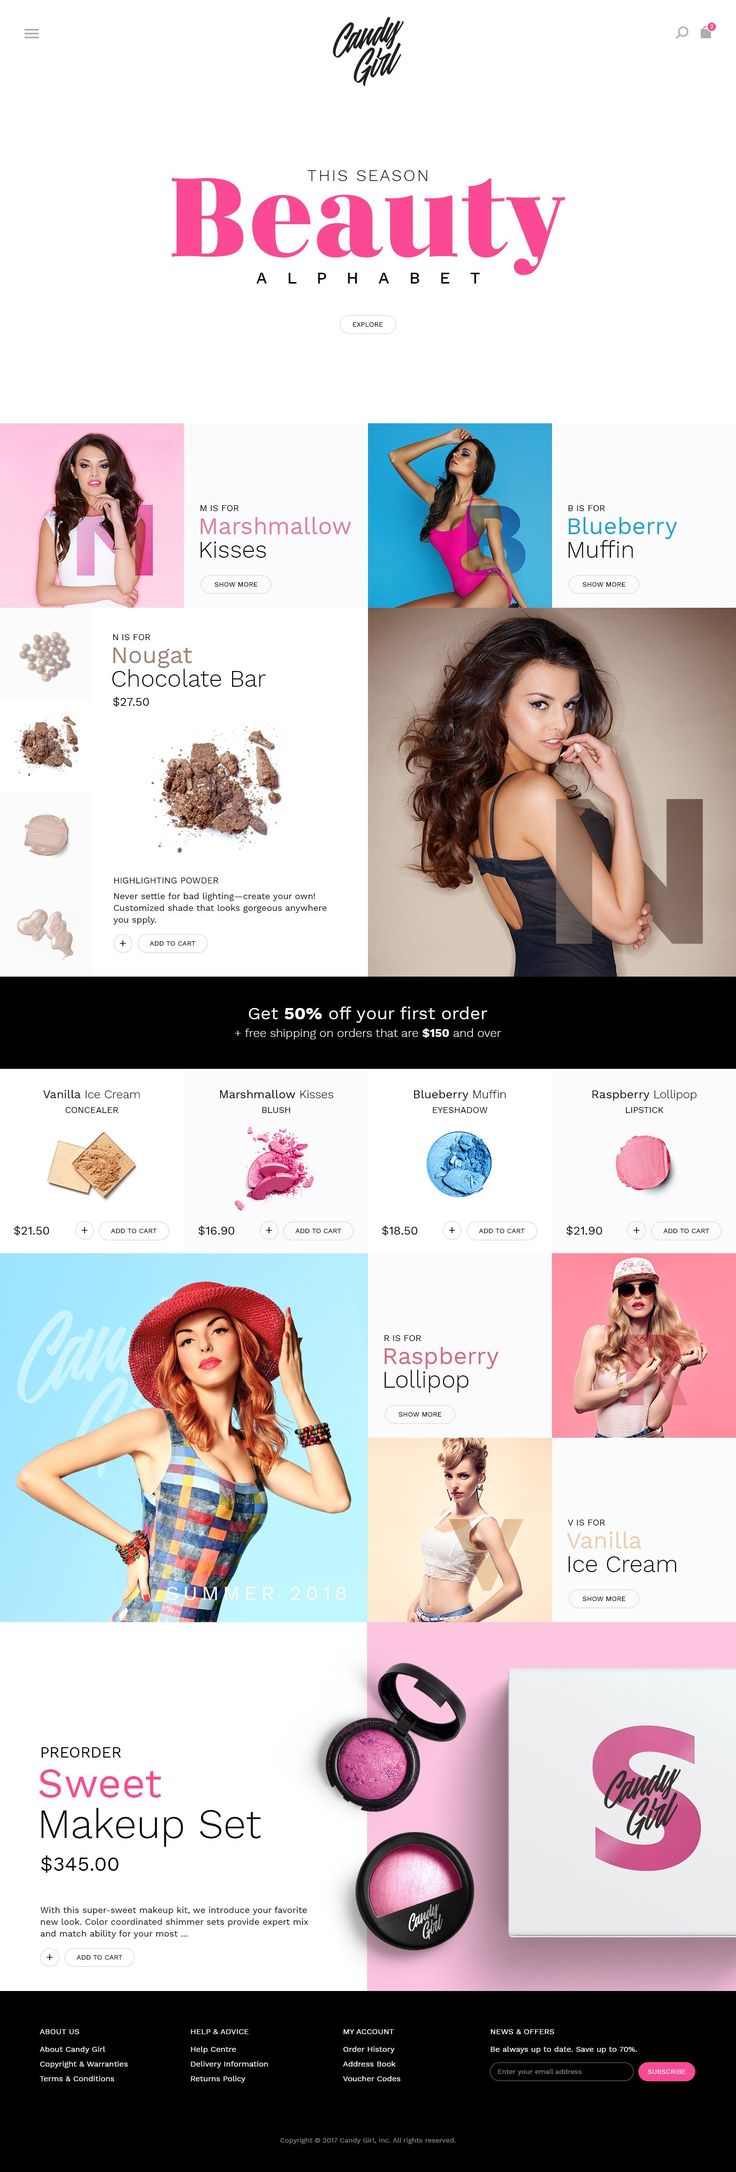 Candy Girl - ecommerce website template